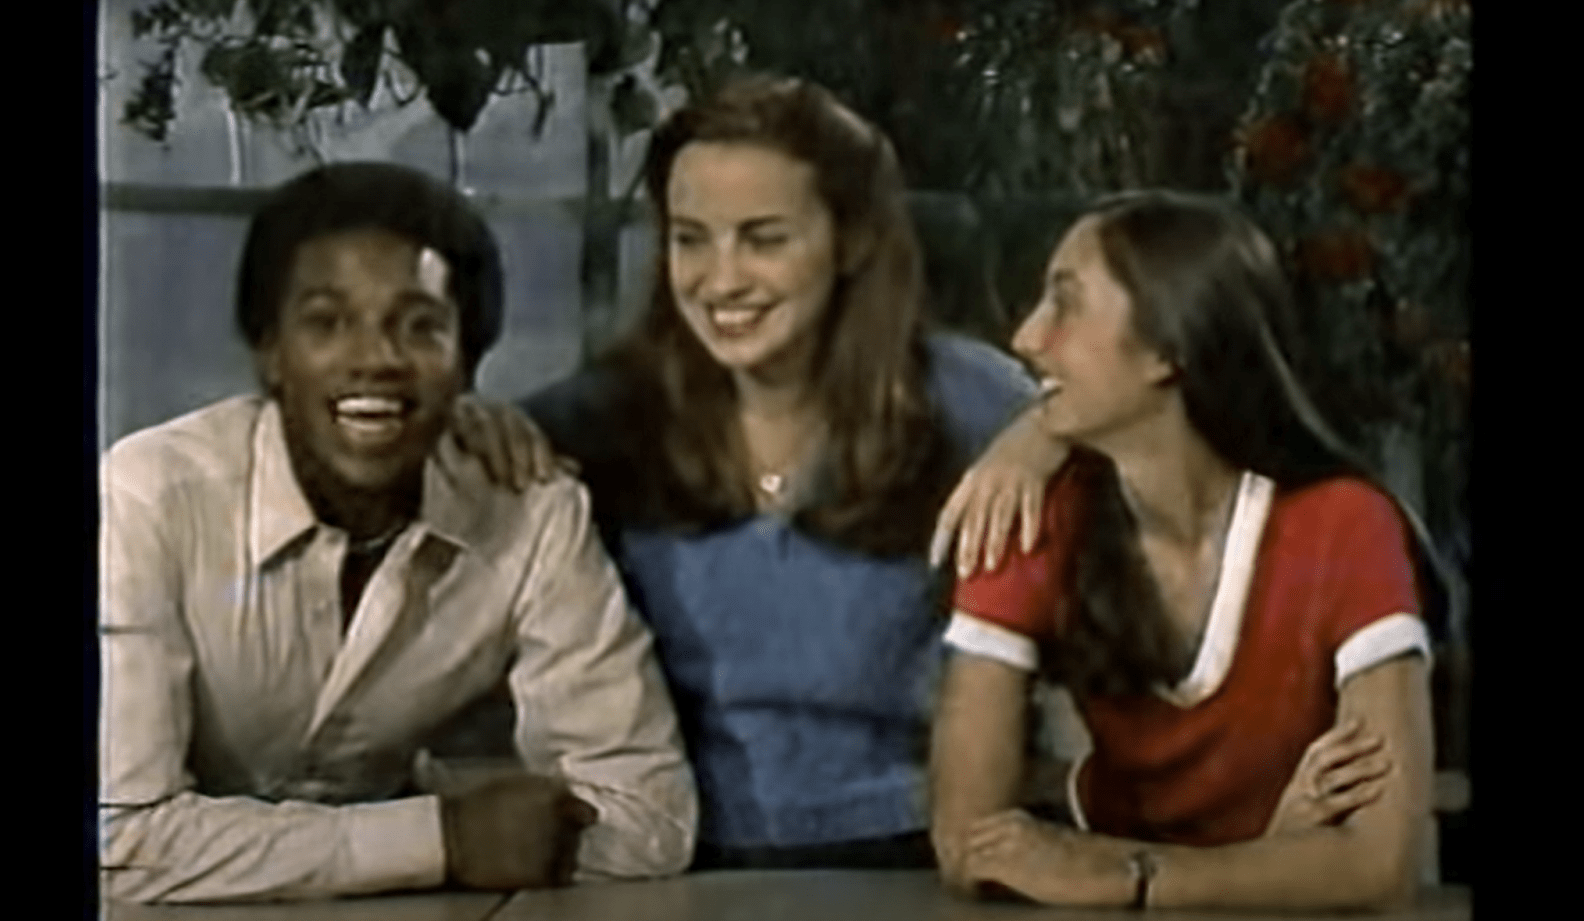 an old grainy color tv image of three people smiling and looking at the camera (a Black man, and two white women). the white woman in the center is leaning on the other two people's shoulders